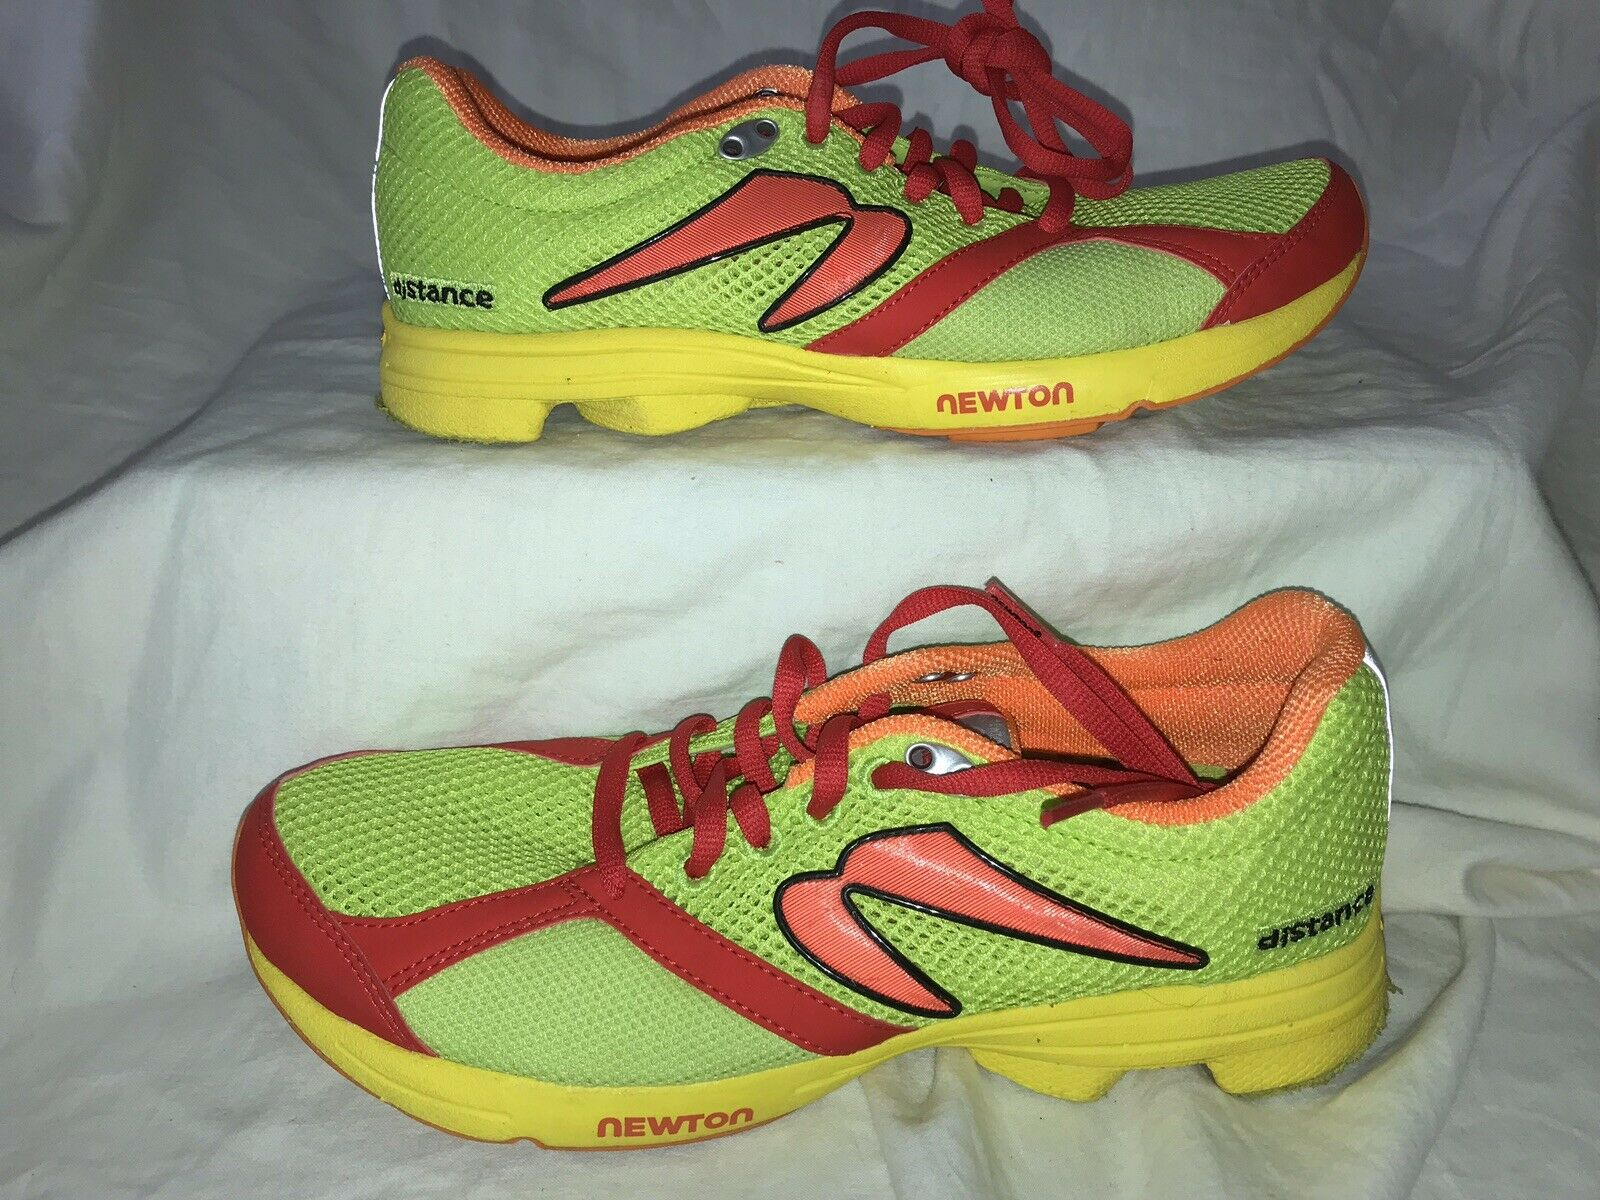 EXC  NEWTON Distance Running Athletic shoes Mesh Neon Lime Green Men's Size 7.5